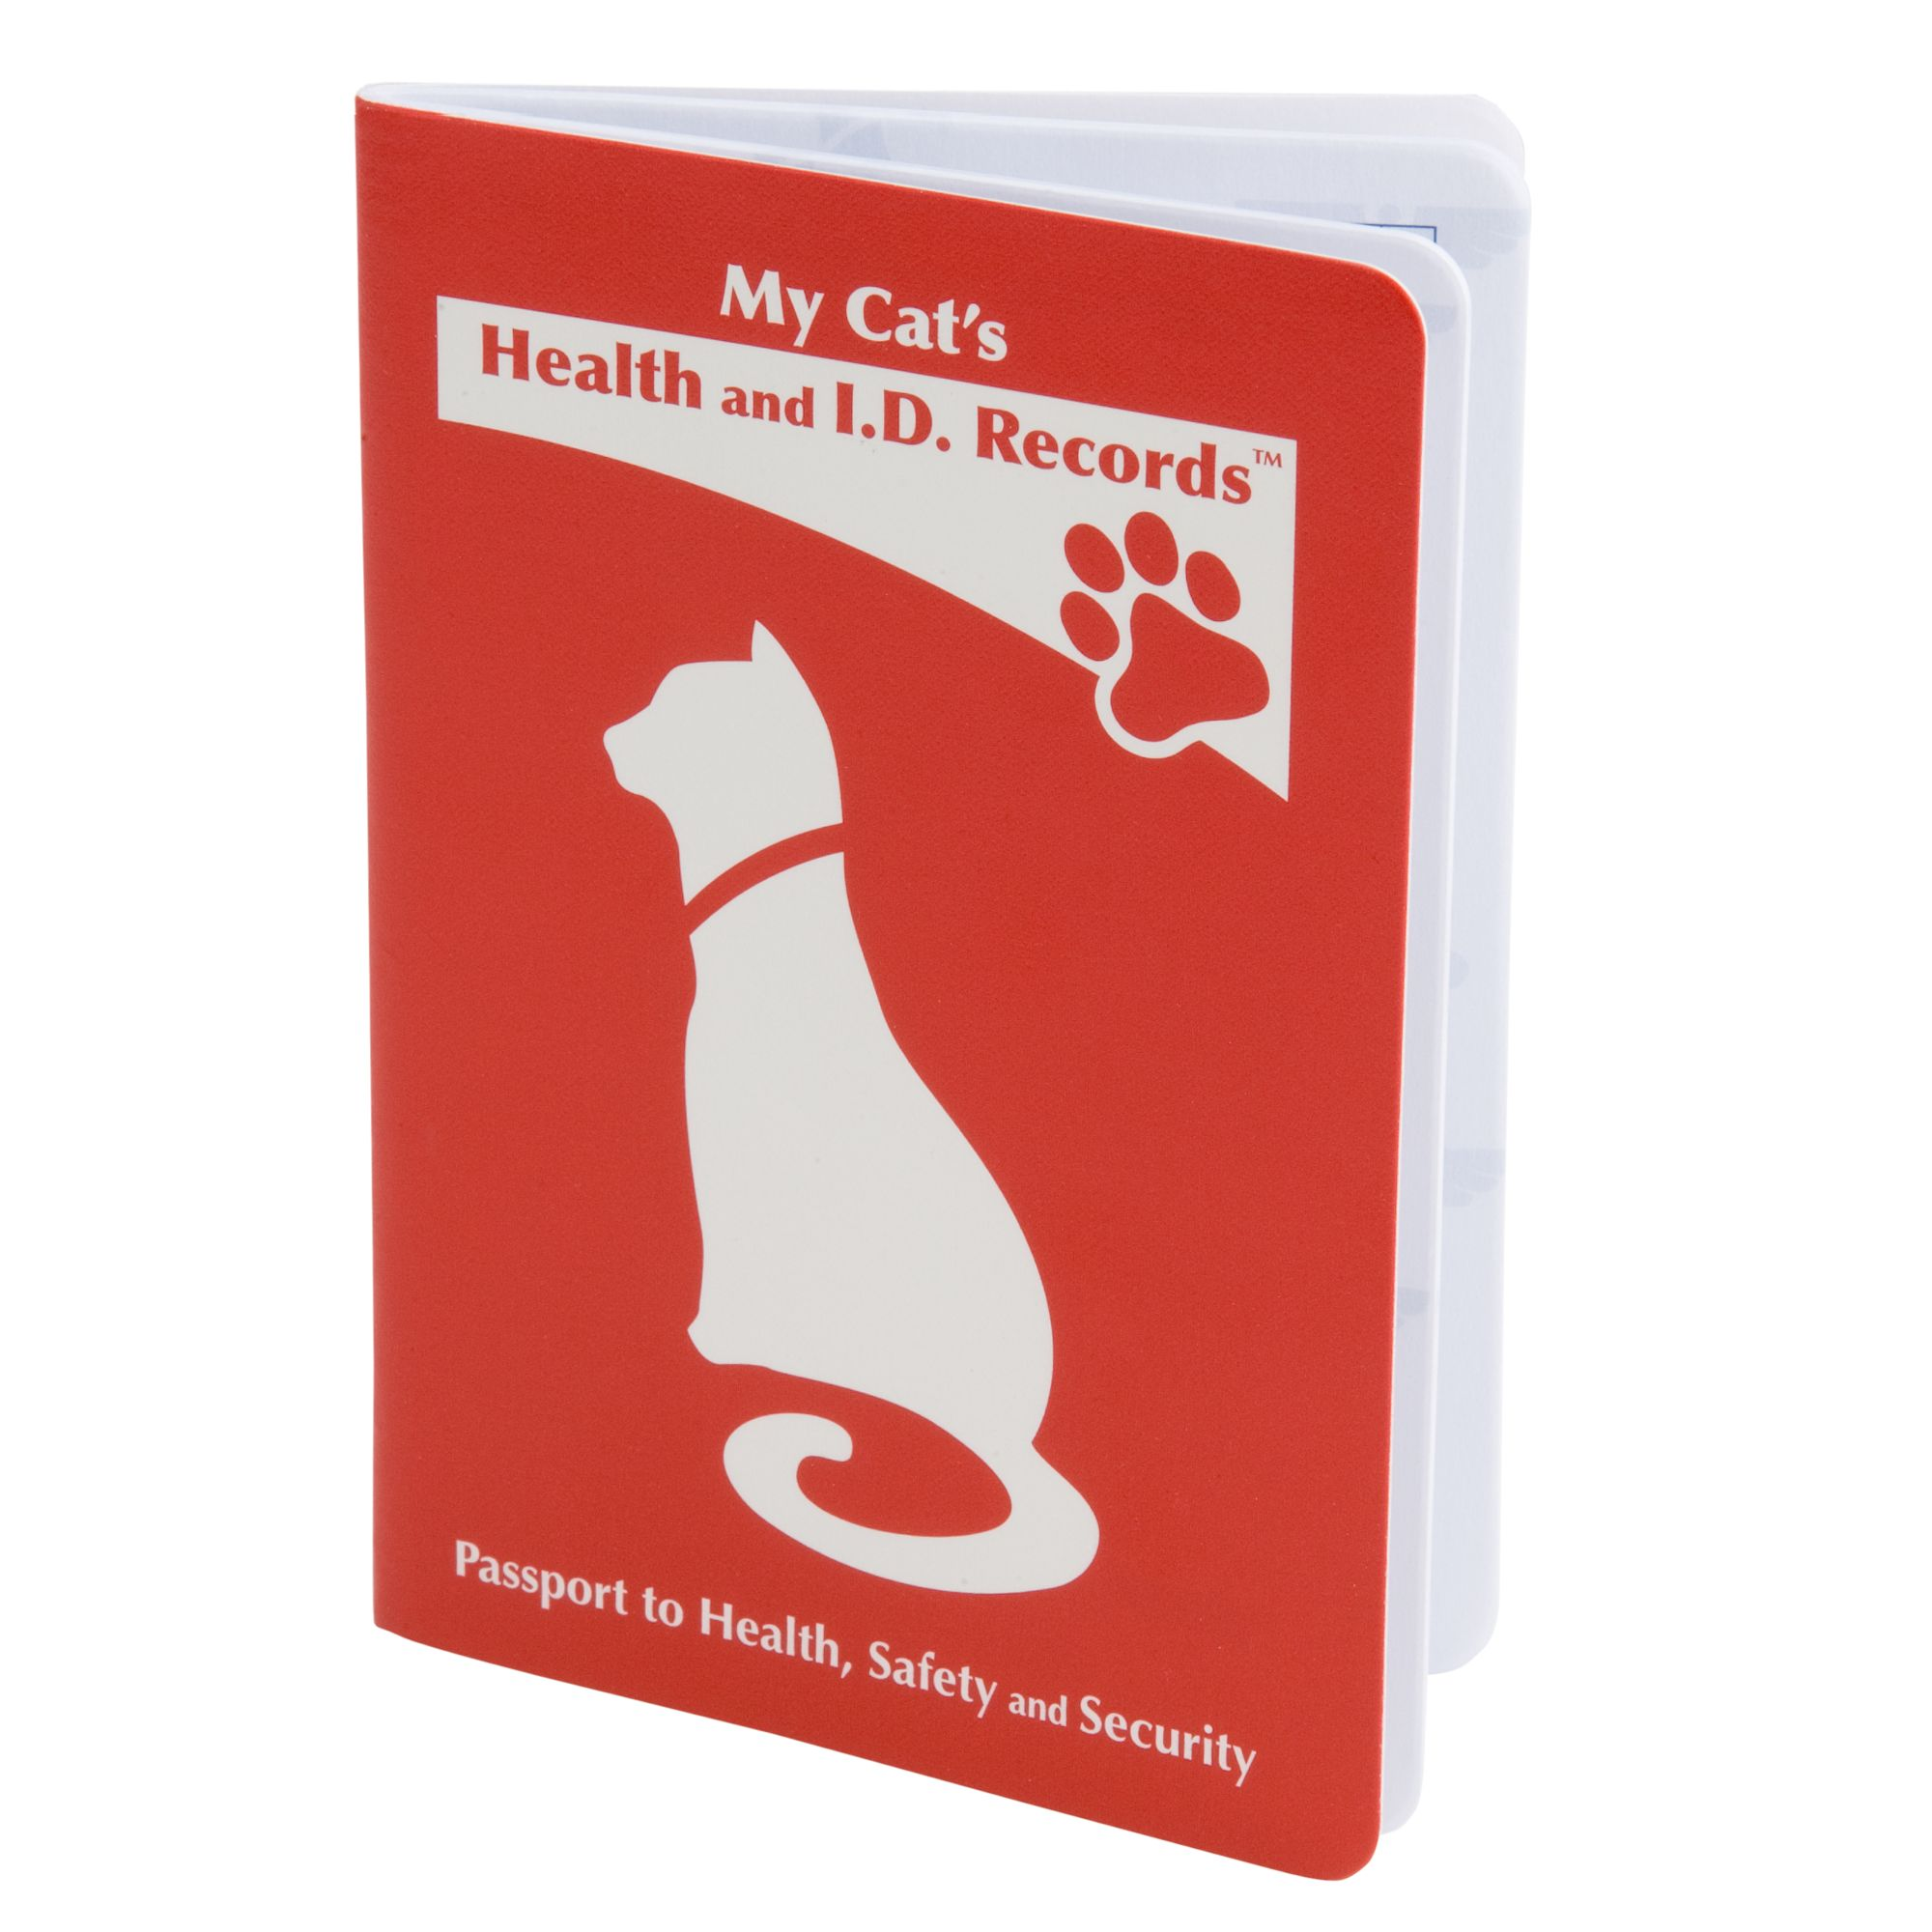 Mdi Health And I.d. Record Cat Passport